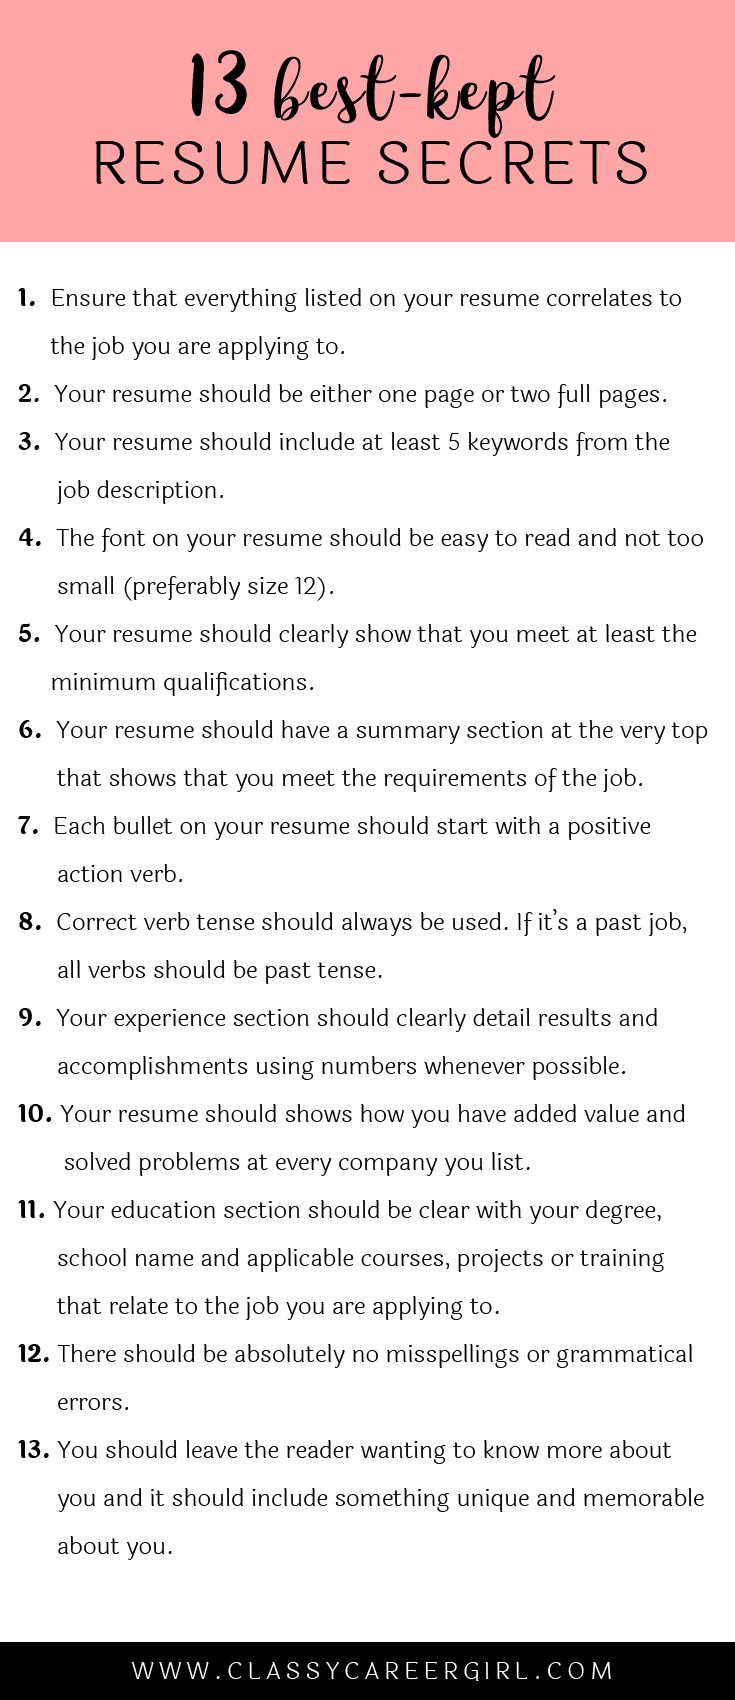 Opposenewapstandardsus  Scenic  Ideas About Resume On Pinterest  Cv Format Resume Cv And  With Fetching Some Hiring Managers Will Toss Your Resume Out If You Dont Know These  With Agreeable Microsoft Word  Resume Template Also What Is On A Resume In Addition Compliance Resume And Resume Example For College Student As Well As Worship Leader Resume Additionally Do Resumes Need An Objective From Pinterestcom With Opposenewapstandardsus  Fetching  Ideas About Resume On Pinterest  Cv Format Resume Cv And  With Agreeable Some Hiring Managers Will Toss Your Resume Out If You Dont Know These  And Scenic Microsoft Word  Resume Template Also What Is On A Resume In Addition Compliance Resume From Pinterestcom